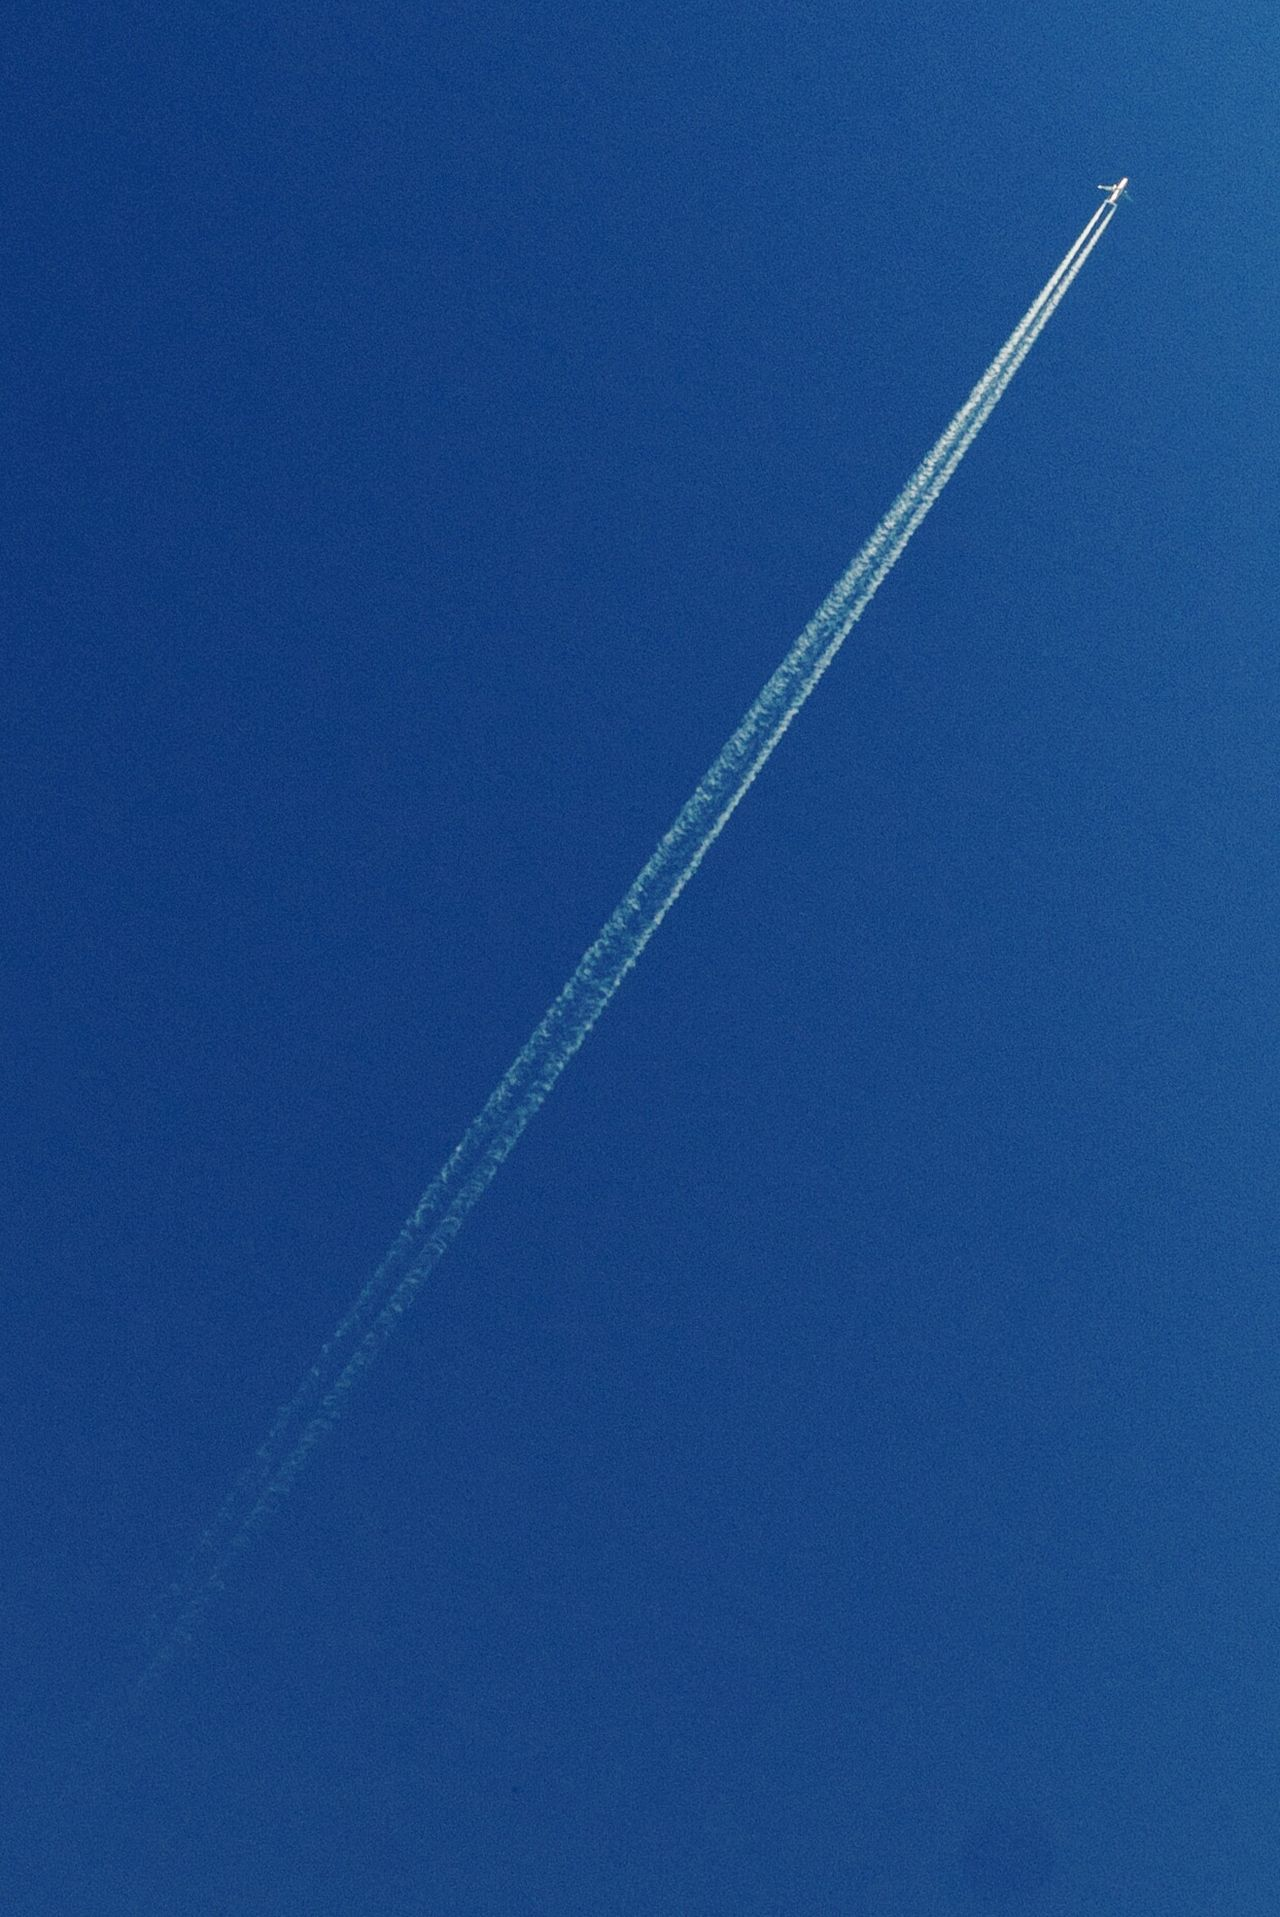 Airoplane Smoke Fly Me To The Moon Vapor Trail Flying Blue Air Vehicle Sky Day Clear Sky Outdoors Contrail Low Angle View Airplane Nature Beauty In Nature Scenics Airshow No People